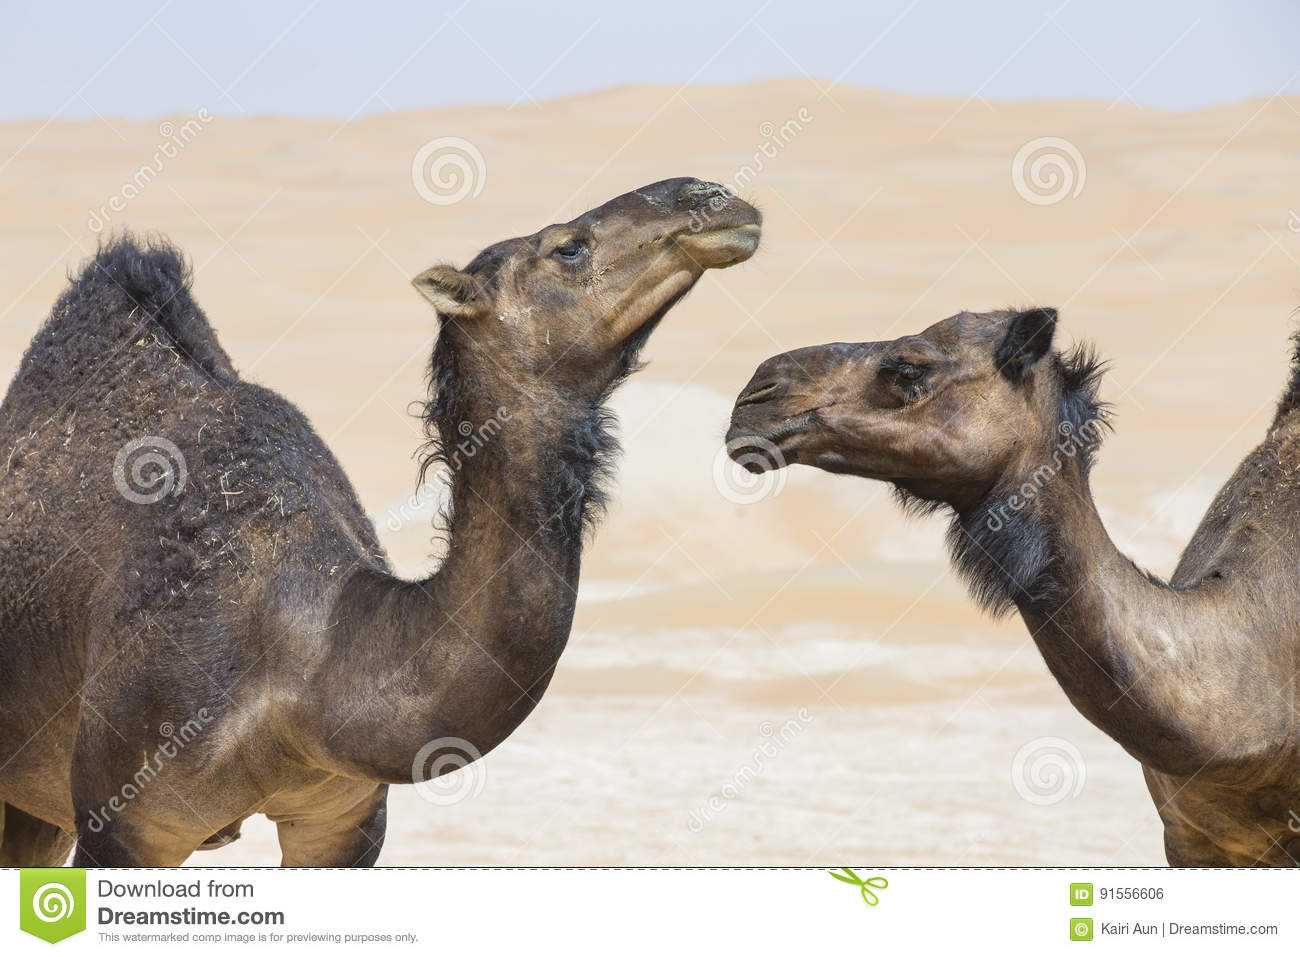 Black Camels in Liwa desert